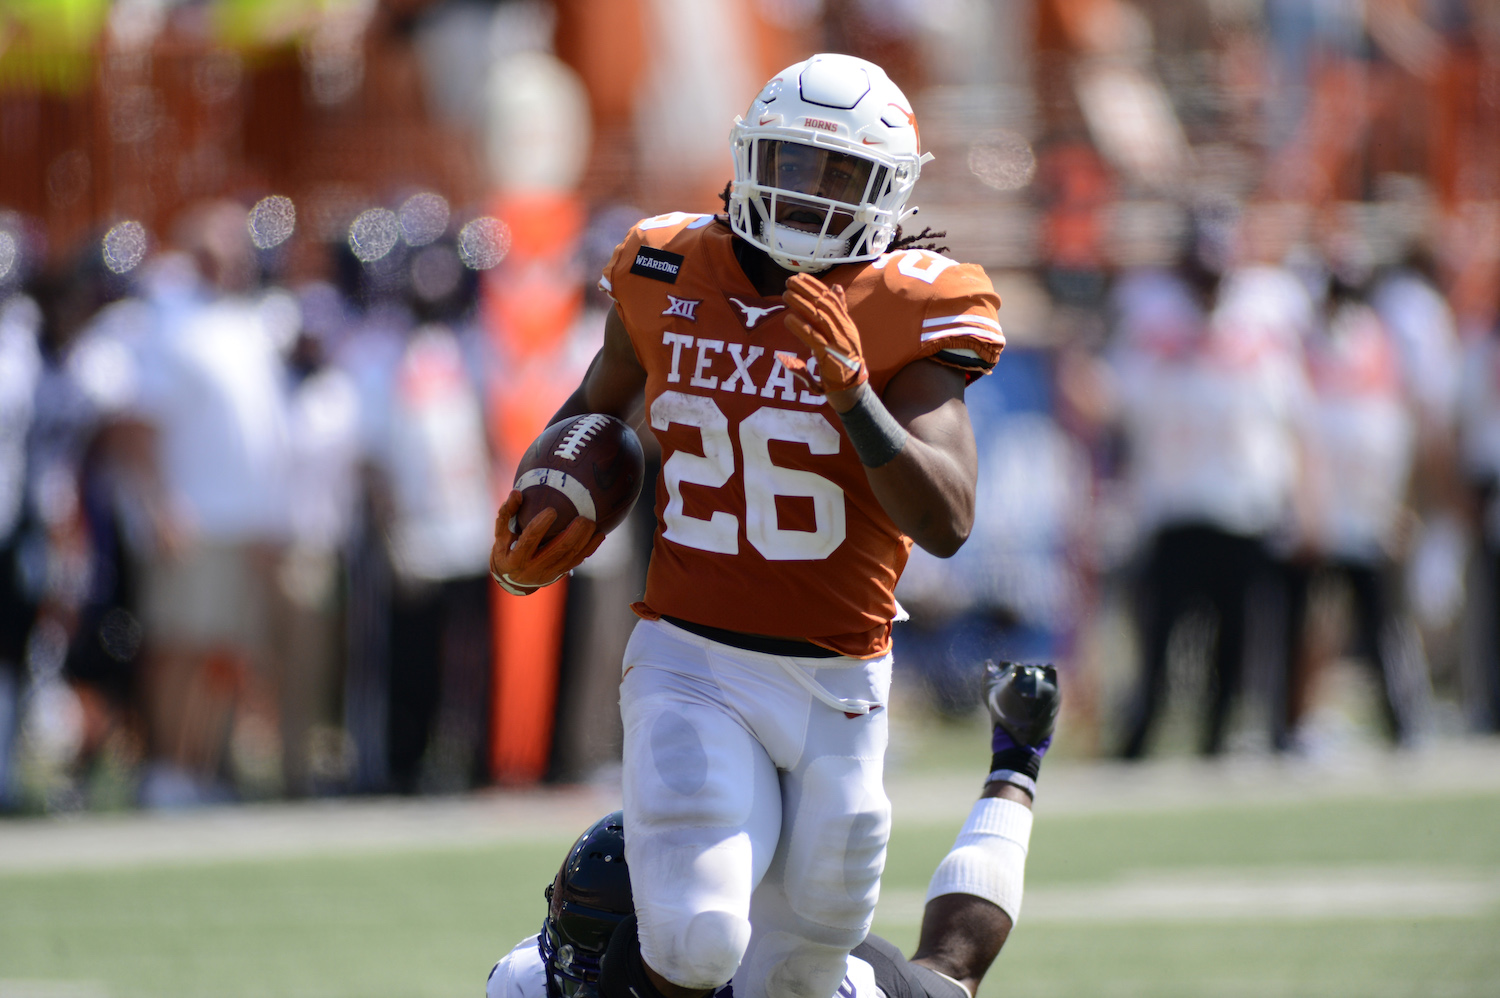 Steve Sarkisian and Texas Longhorns Get Bad News With 2019 Leading Rusher Entering Transfer Portal